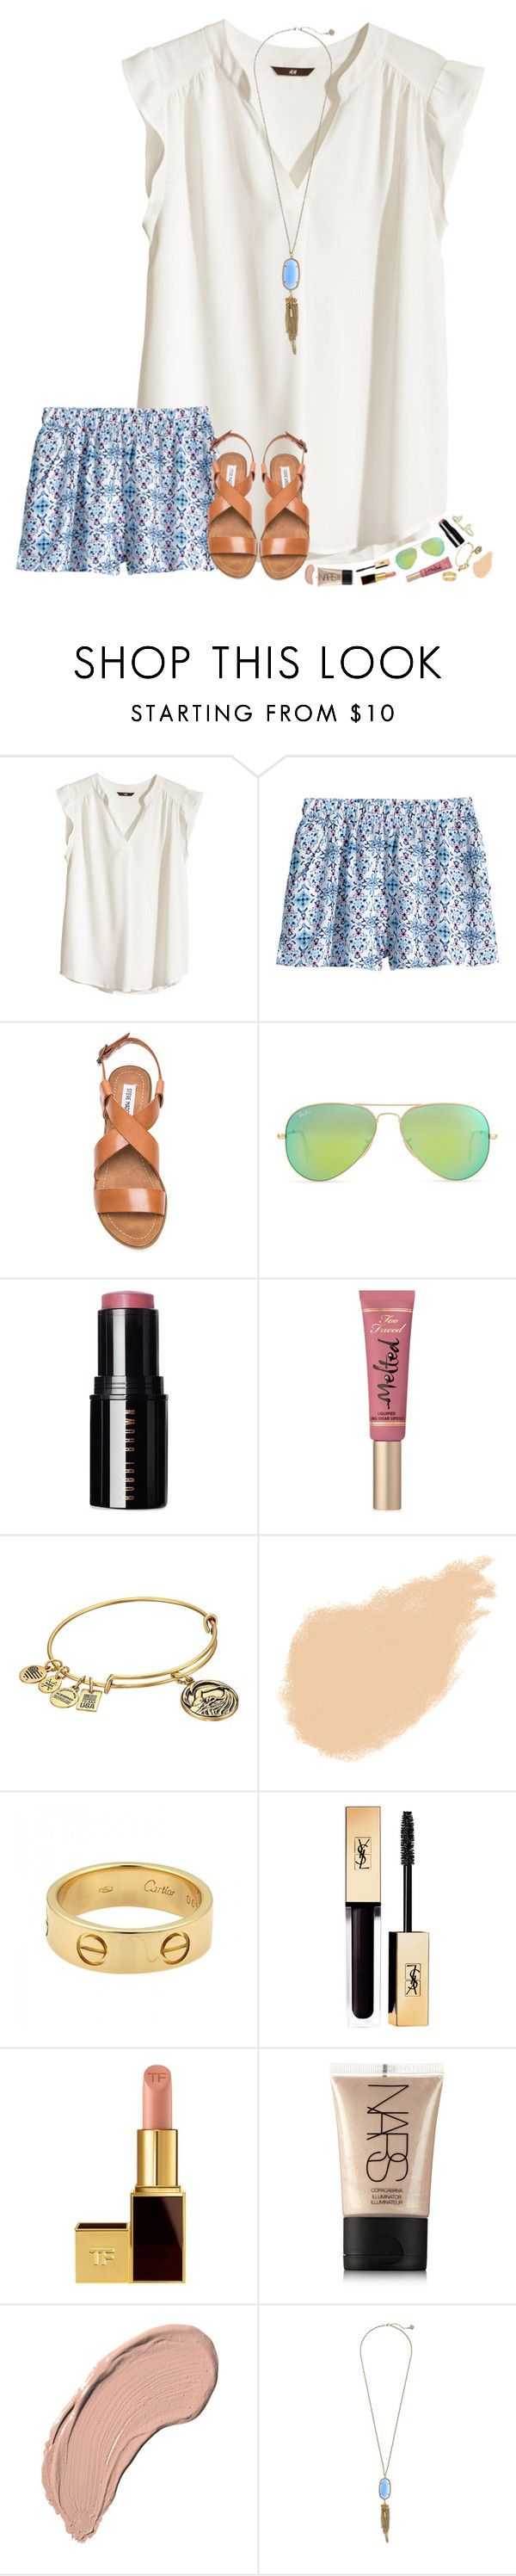 """currently streaming YouTube to my tv and online shopping "" by hopemarlee ❤ liked on Polyvore featuring H&M, Steve Madden, Ray-Ban, Bobbi Brown Cosmetics, Too Faced Cosmetics, Alex and Ani, NARS Cosmetics, Cartier, Tom Ford and NYX"